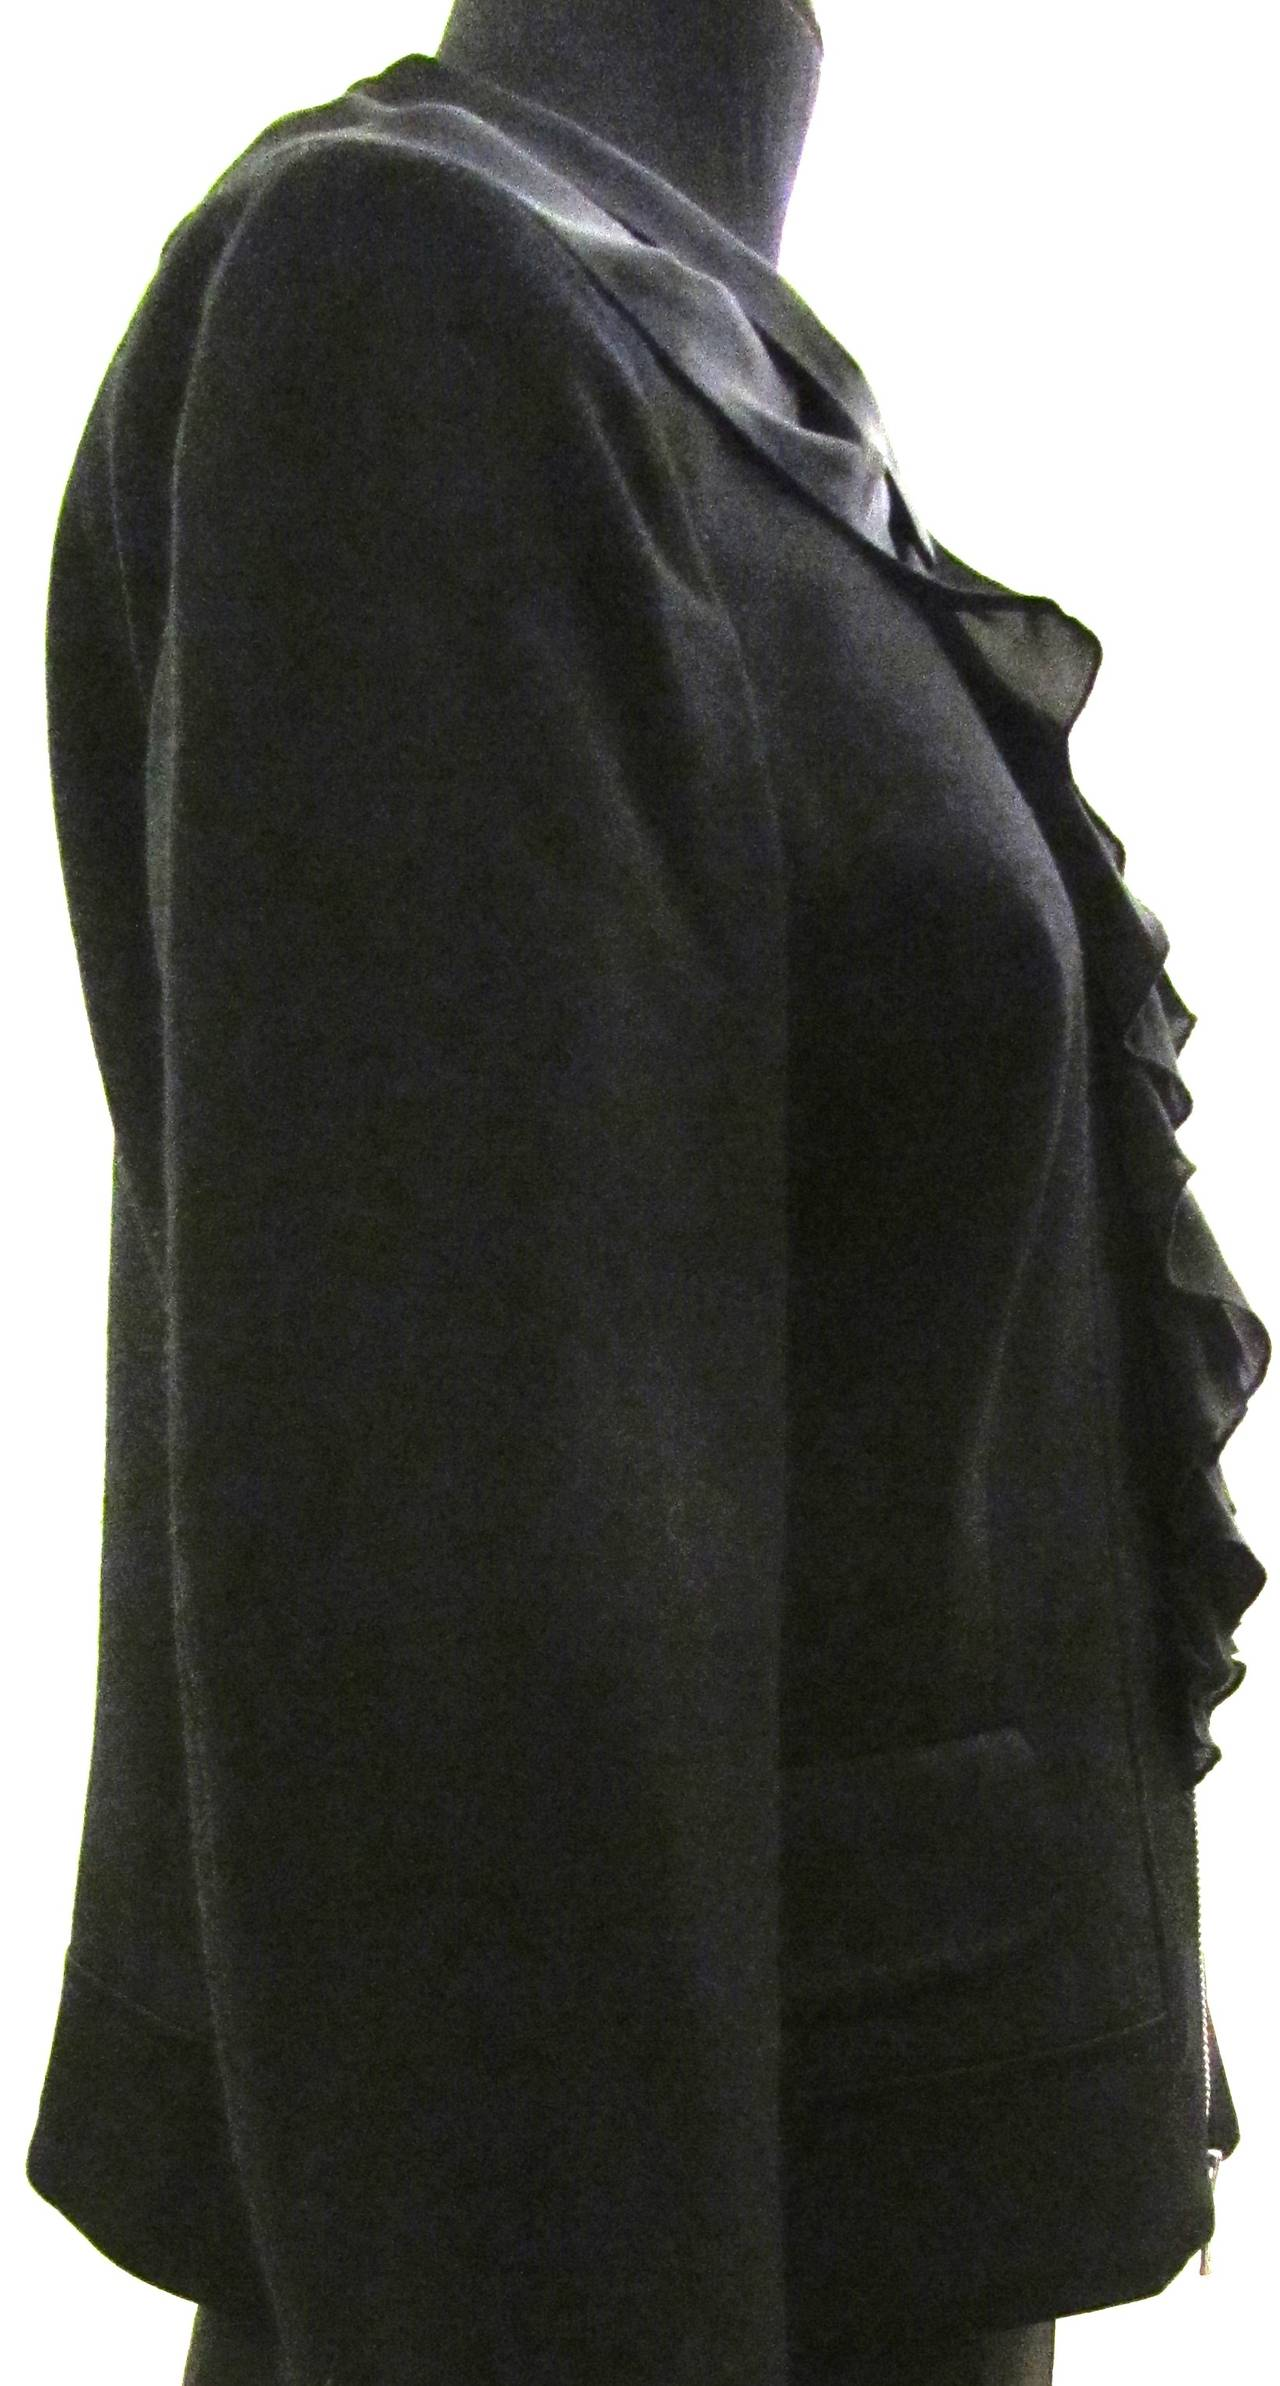 "Moschino ""Cheap and Chic"" Jacket - Black Wool with Silk Crepe Trim 3"